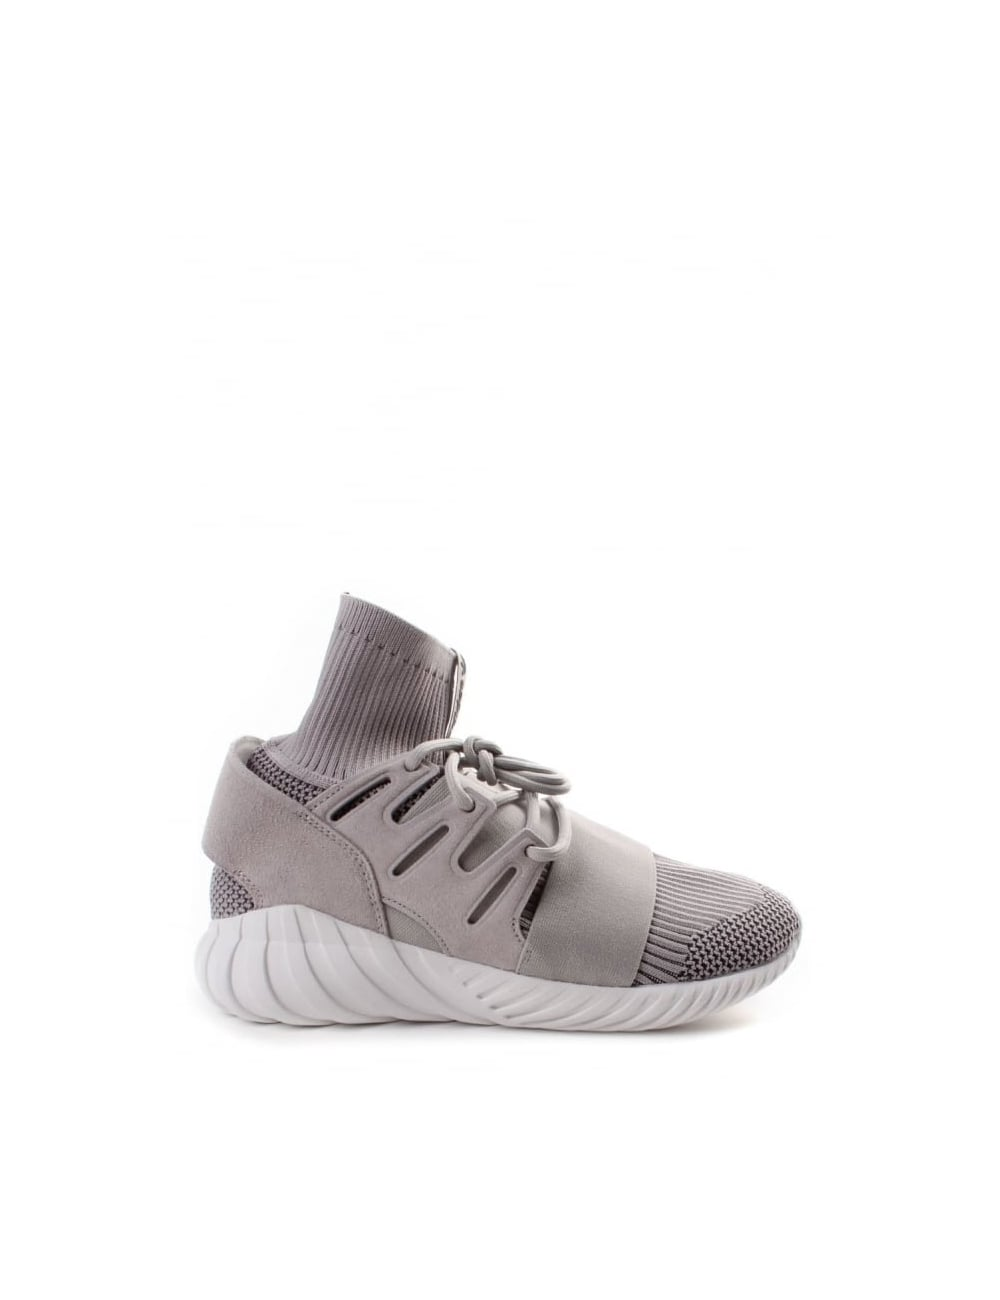 huge discount a4a2e c32b1 Adidas Tubular Men's Doom Primeknit Trainer